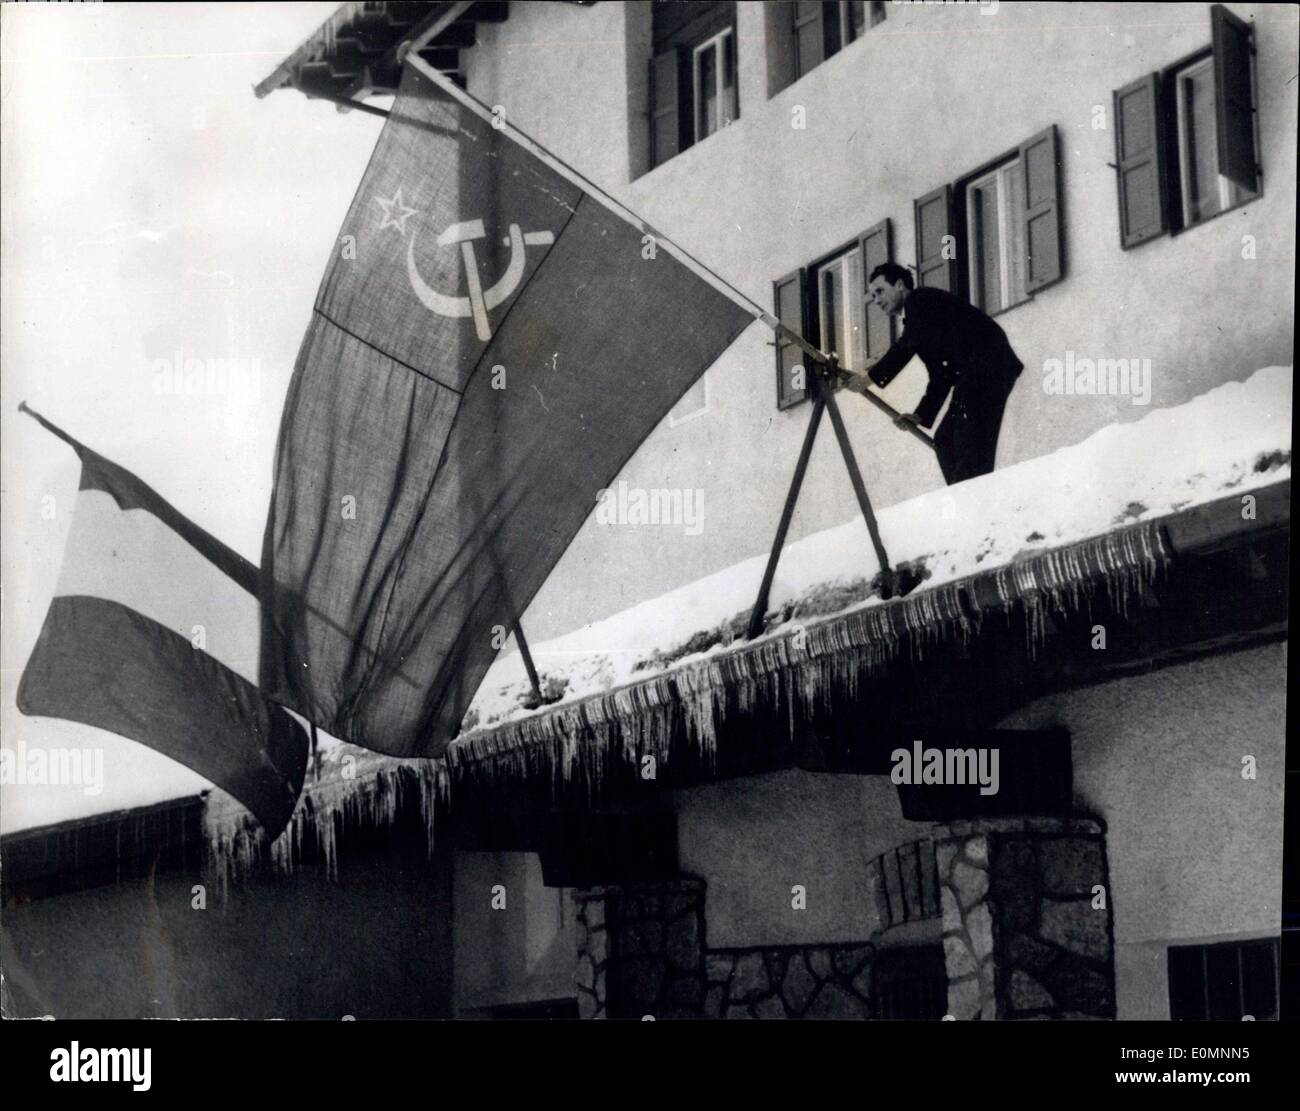 Jan. 17, 1956 - The Soviet Flag over the streets of Cortina, Italy - ready for the Winter Olympics. - Stock Image